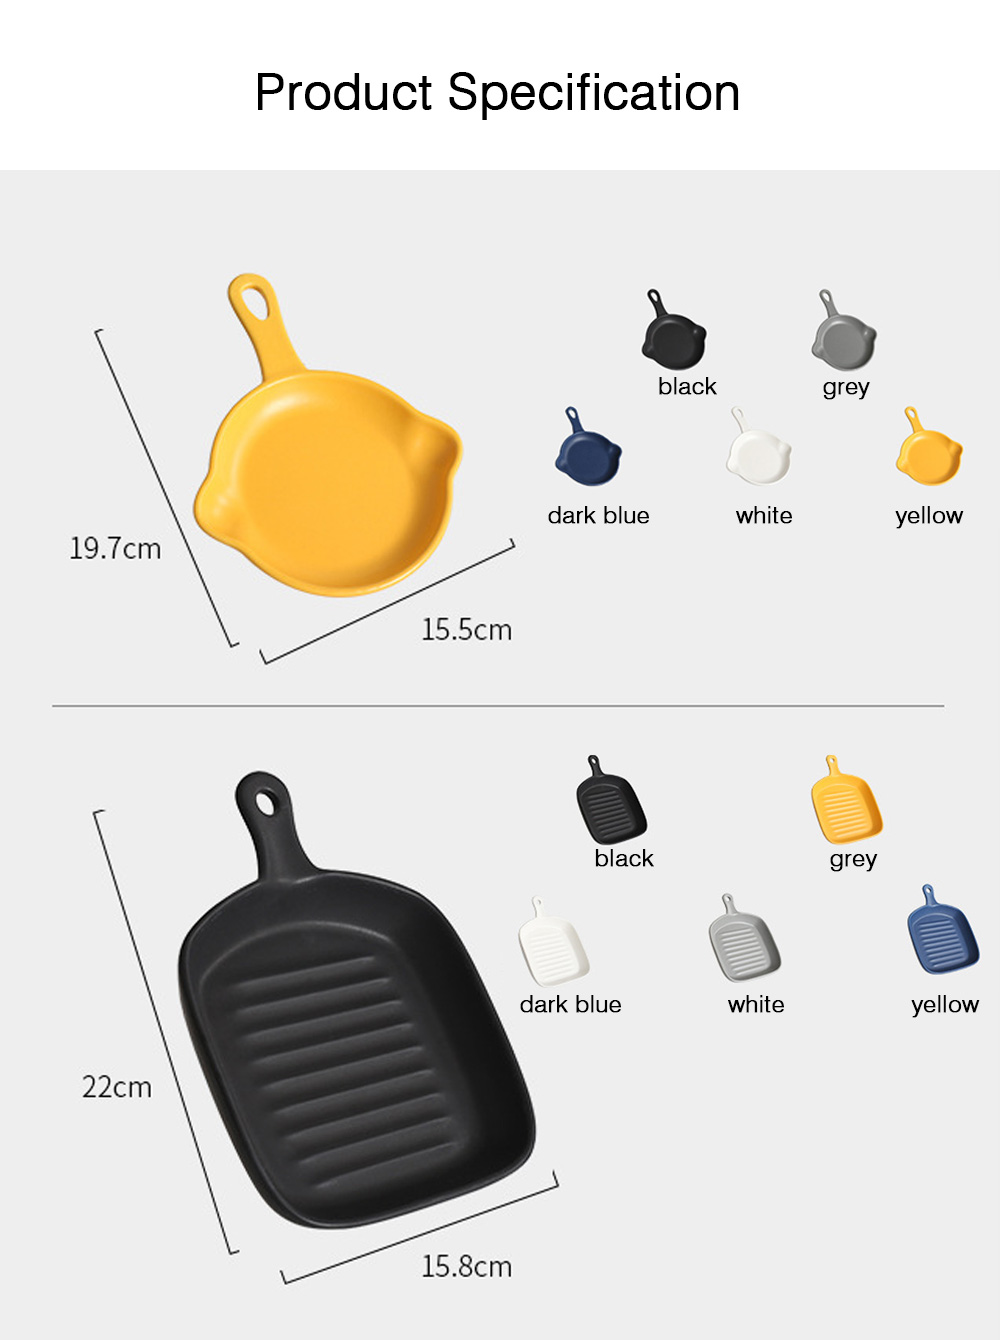 Nordic Style Ceramic Pan with Handle for Baking, Creative Nonstick Pan 8 Inch for Breakfast Ceramic Tableware 6